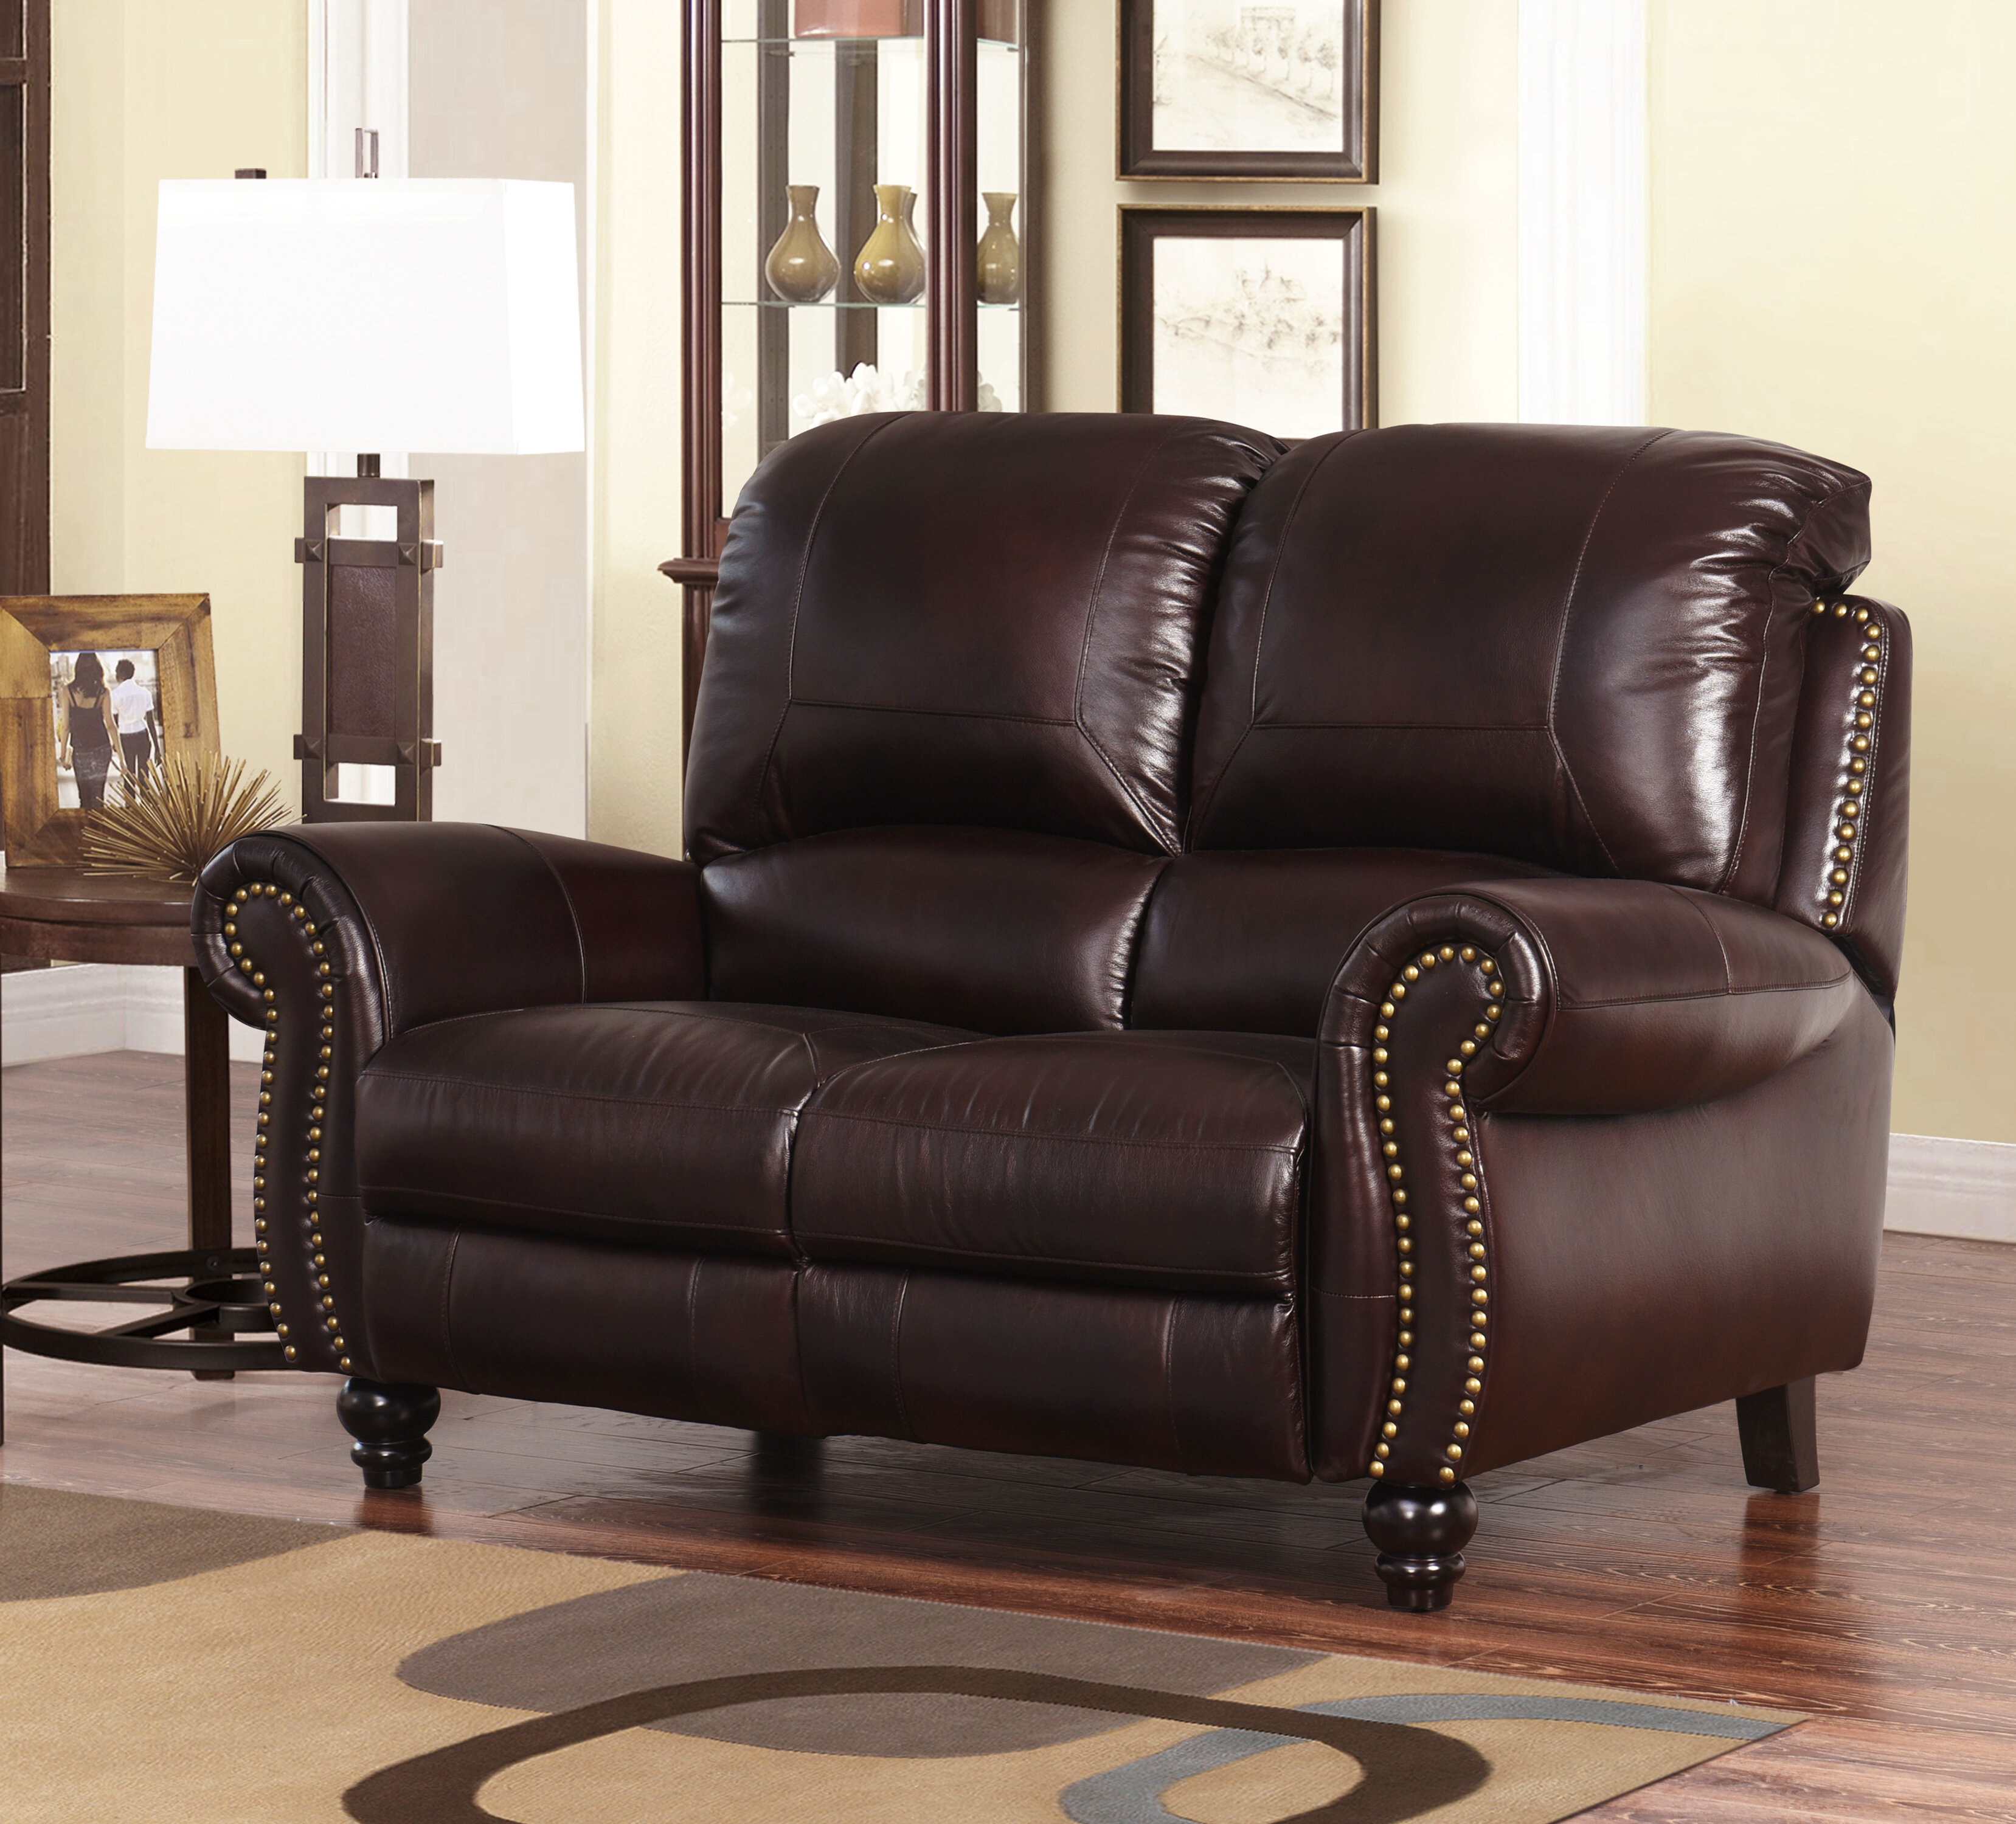 Miraculous Williston Forge Tanguay Leather Reclining Loveseat Reviews Short Links Chair Design For Home Short Linksinfo